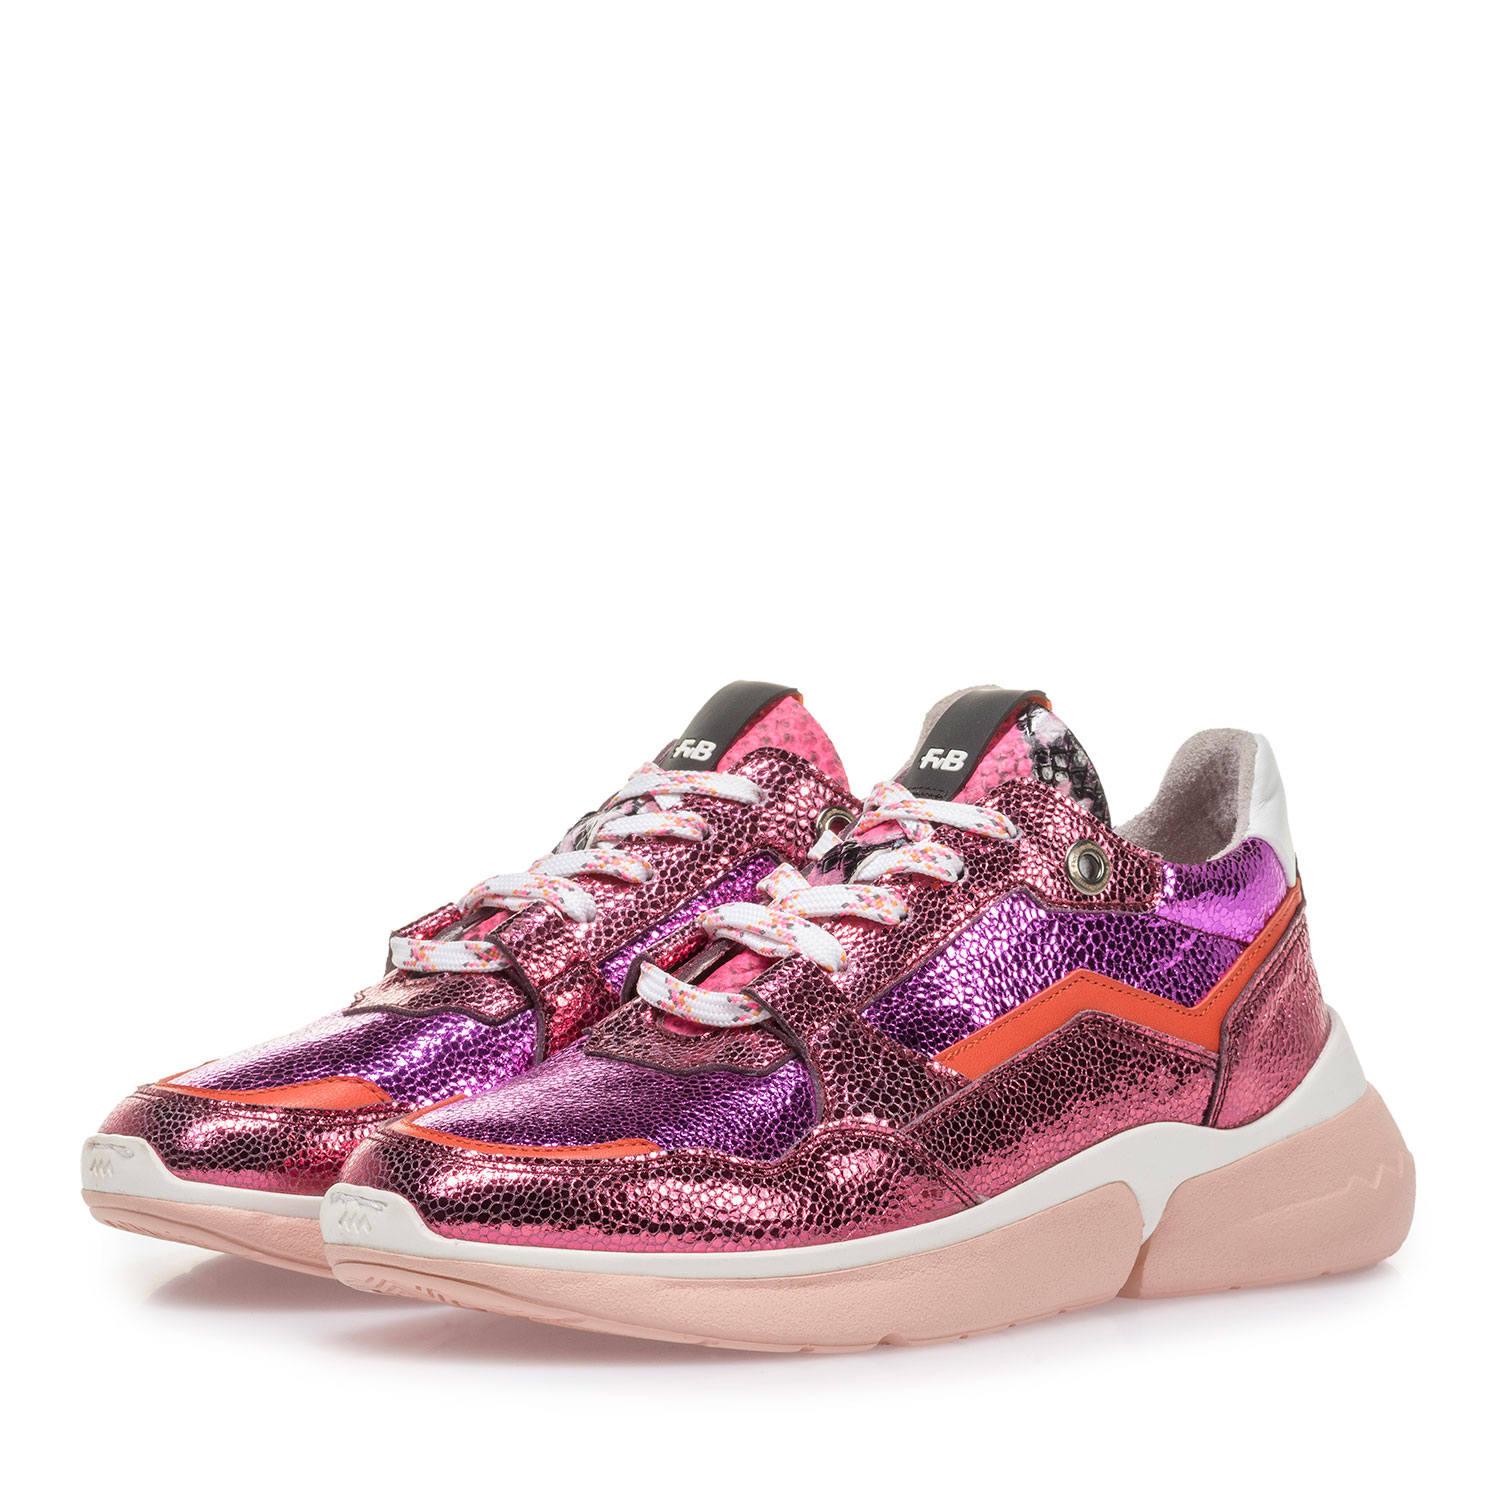 85291/14 - Pink leather sneaker with metallic print